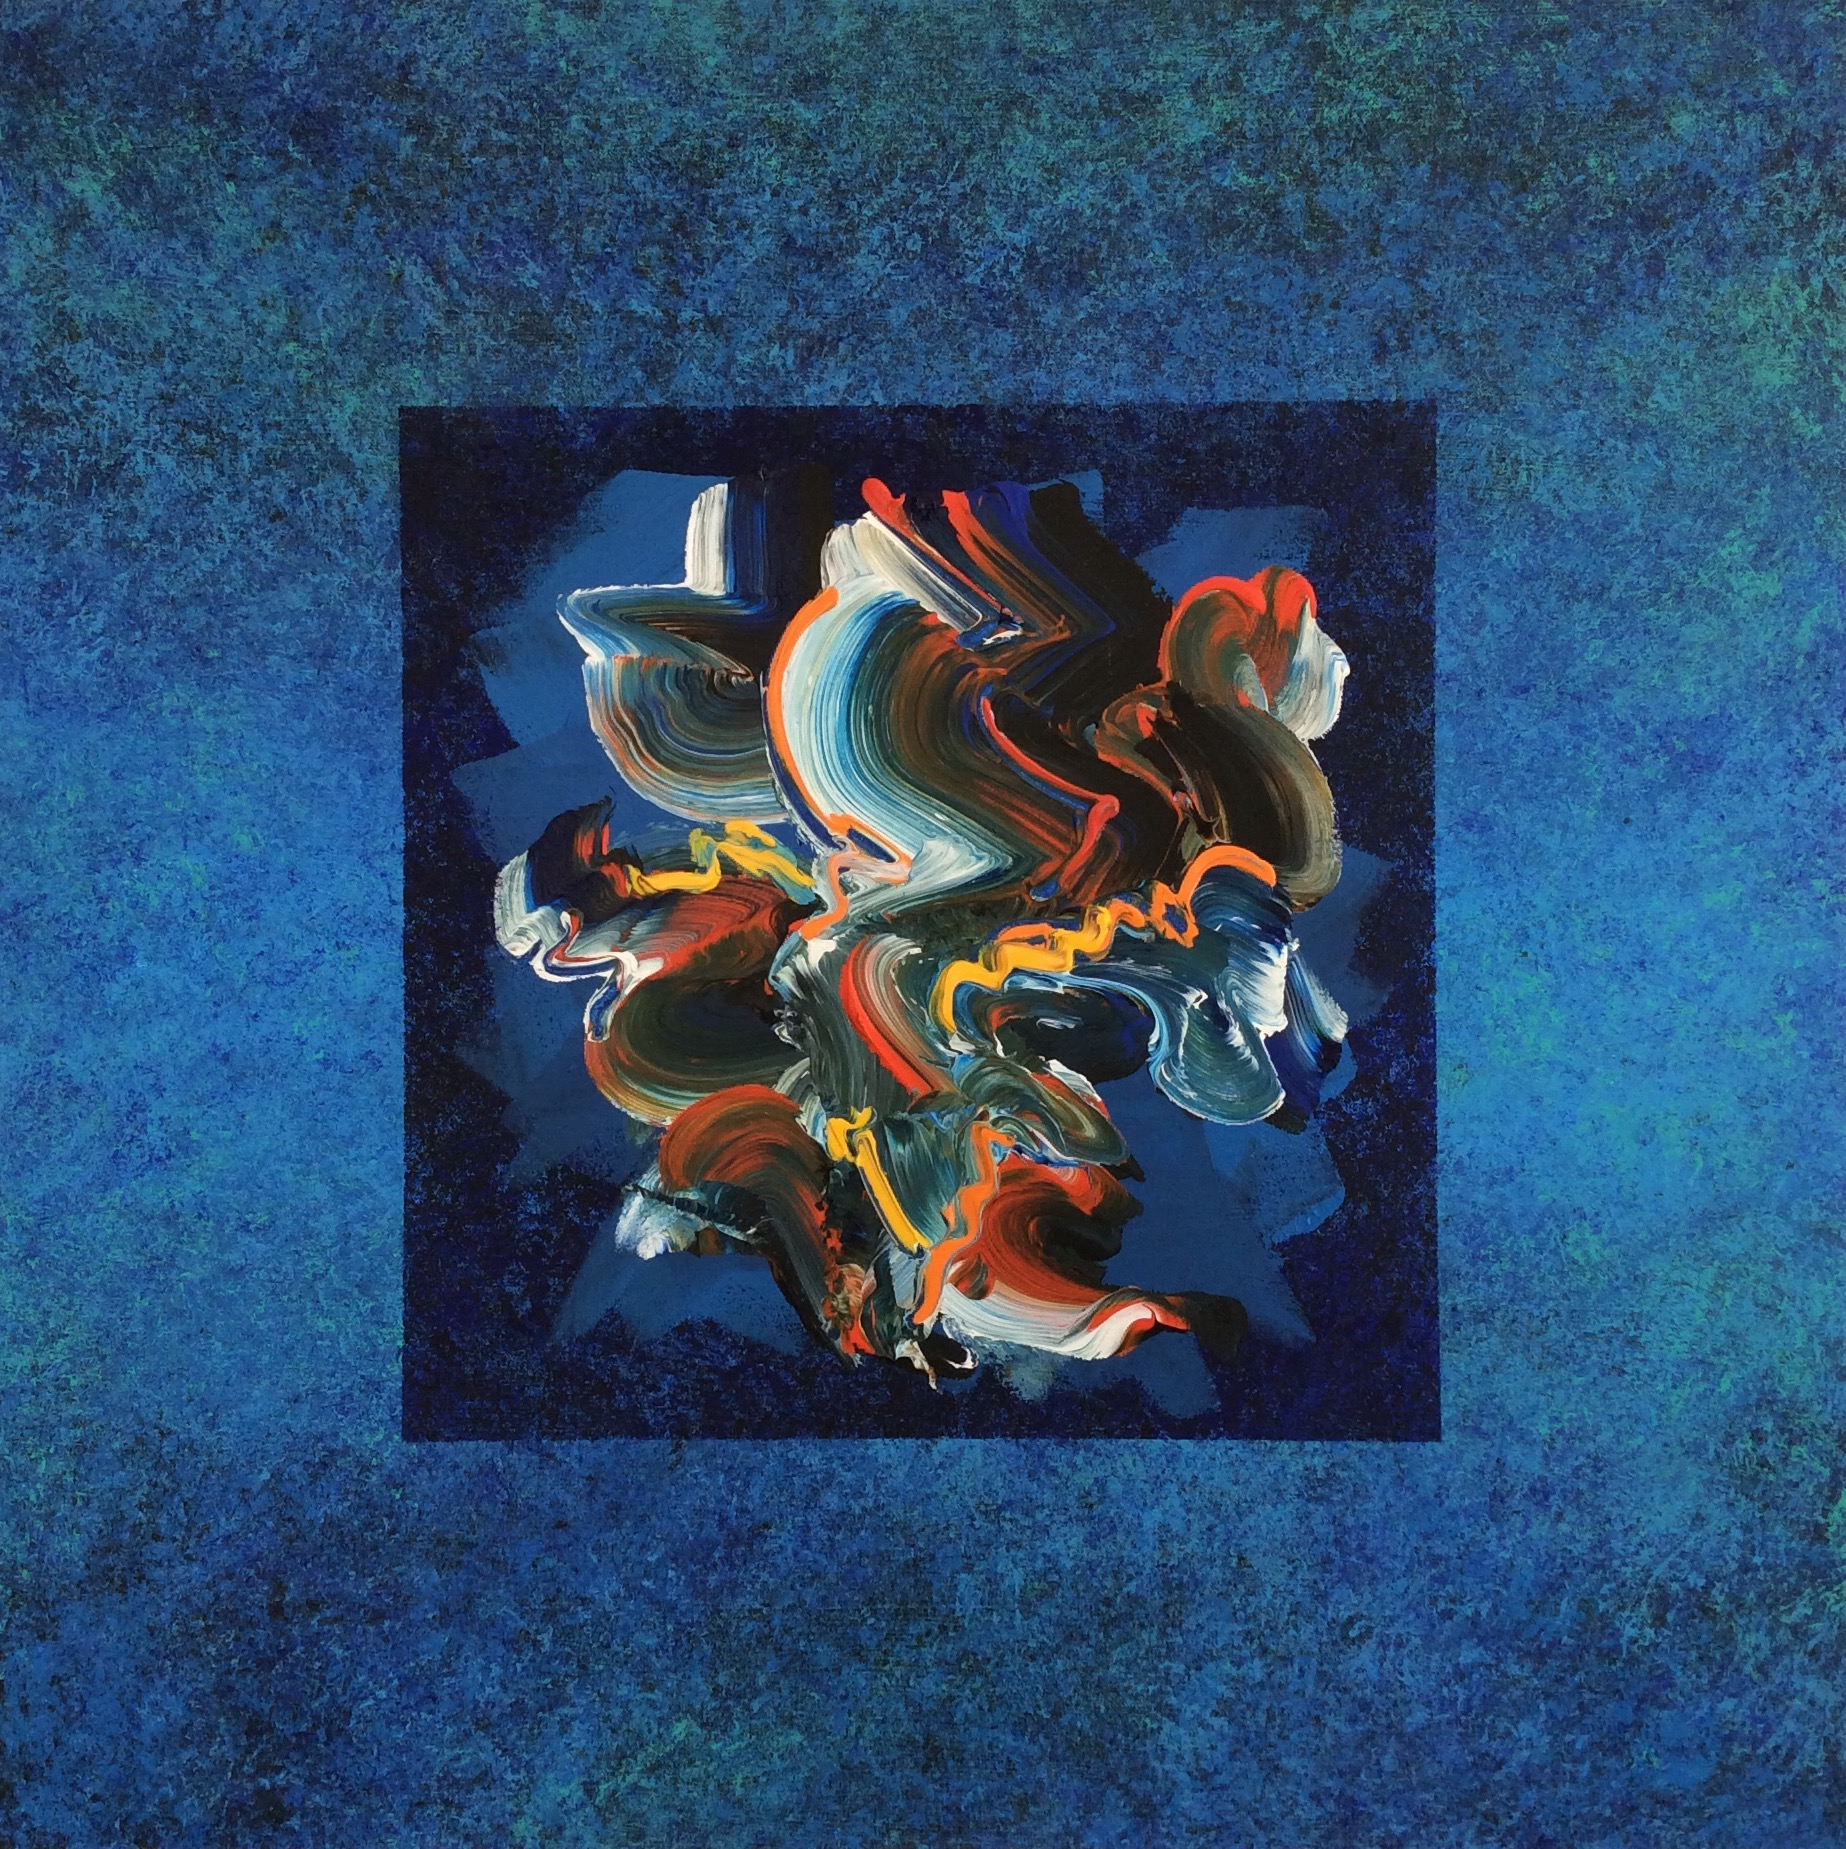 """Taliesin Dawn , 2016, Acrylic on Canvas, 36""""x 36"""".  One integrated swirling shape in white, black, blue, yellow and orange on a blue textured background."""